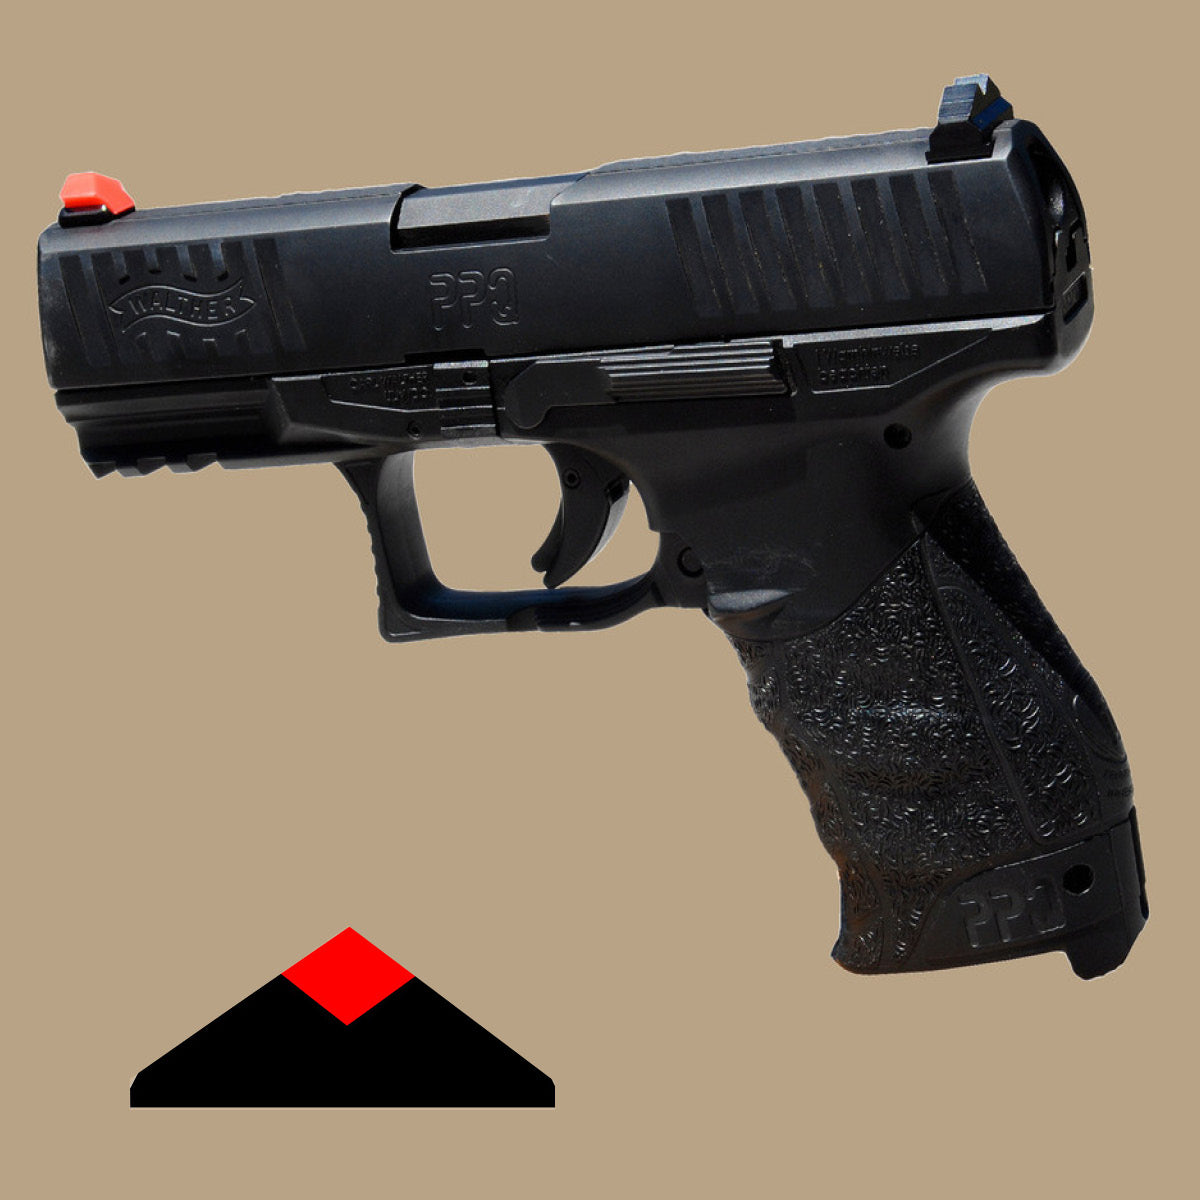 ATDDS - WALTHER PPQ & P99 - DARK DIAMOND SIGHT